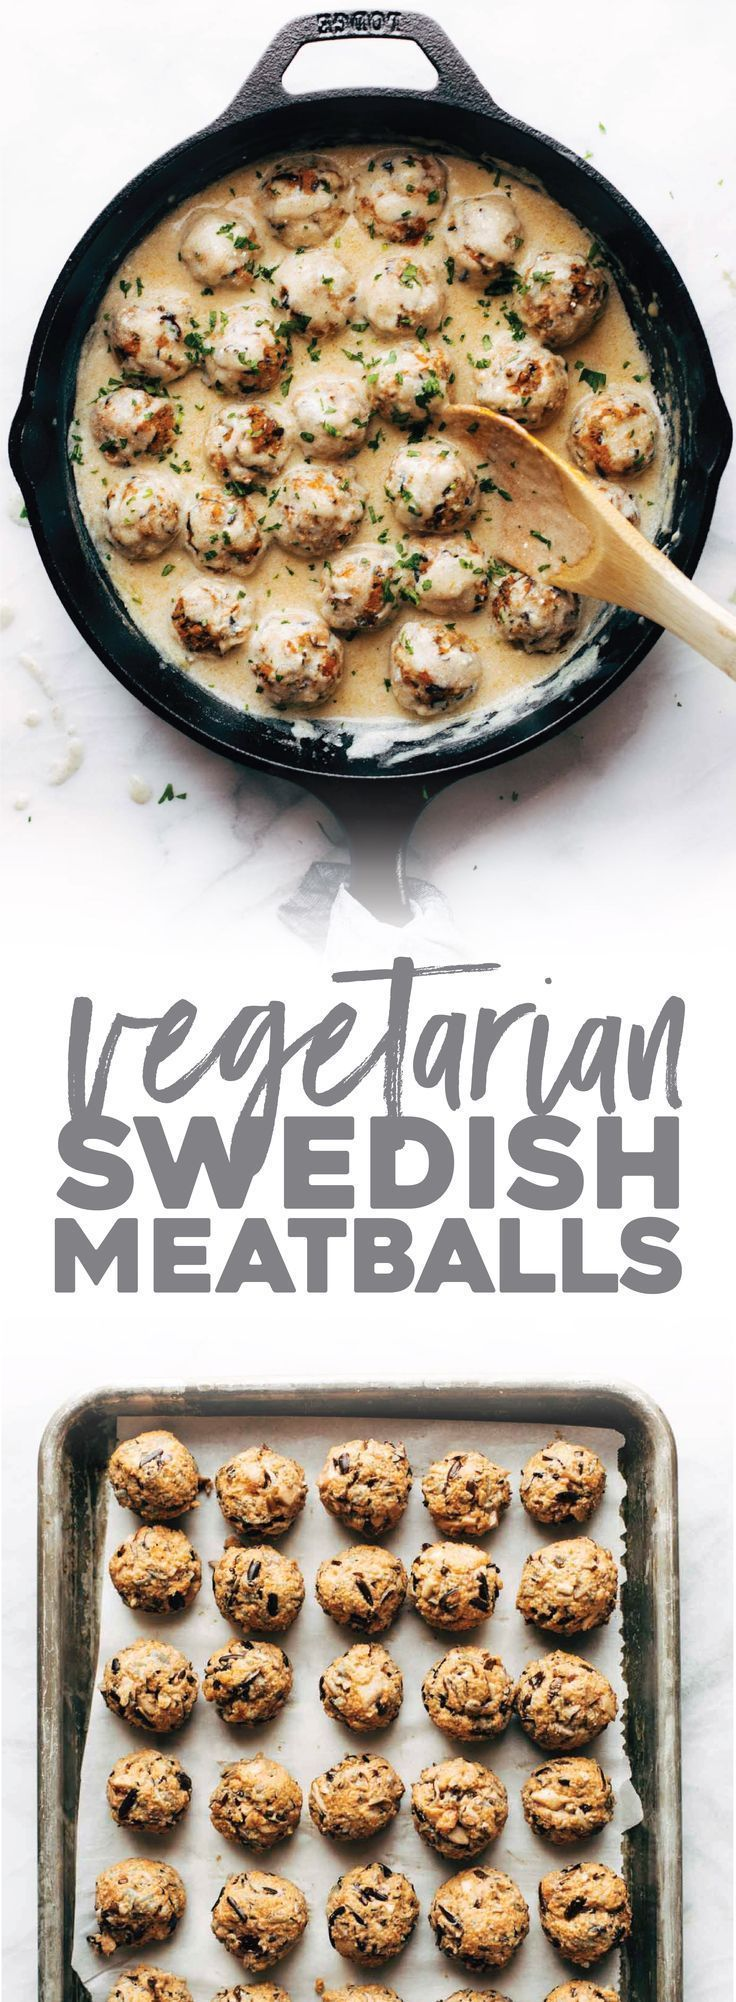 Vegetarian Swedish Meatballs are FOR REAL! ♡ Meatballs made with wild rice and mushrooms, served in a homemade gravy. #vegetarian #meatless #swedish #meatballs #healthyeating #recipe | pinchofyum.com